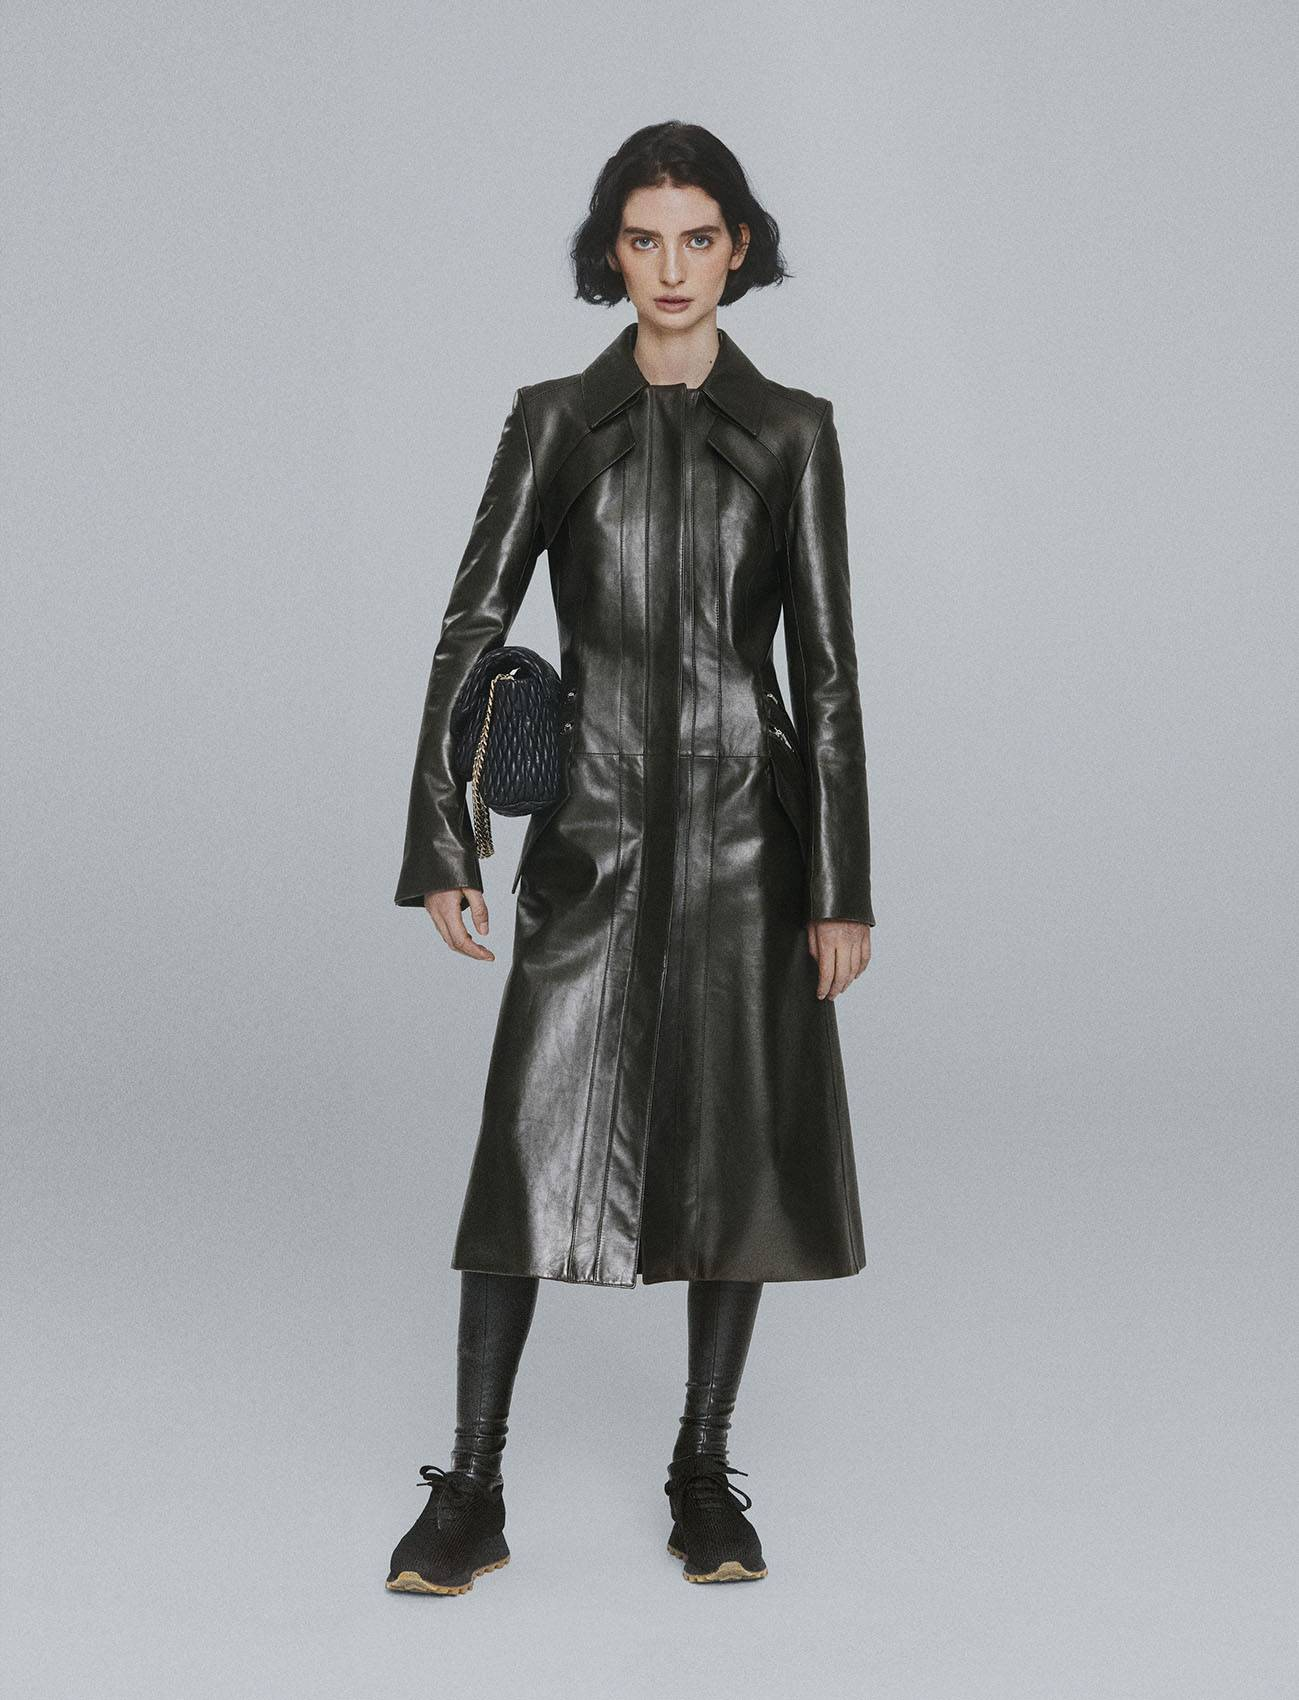 Meadow Walker w kampanii Proenza Schouler Pre-Fall 2021